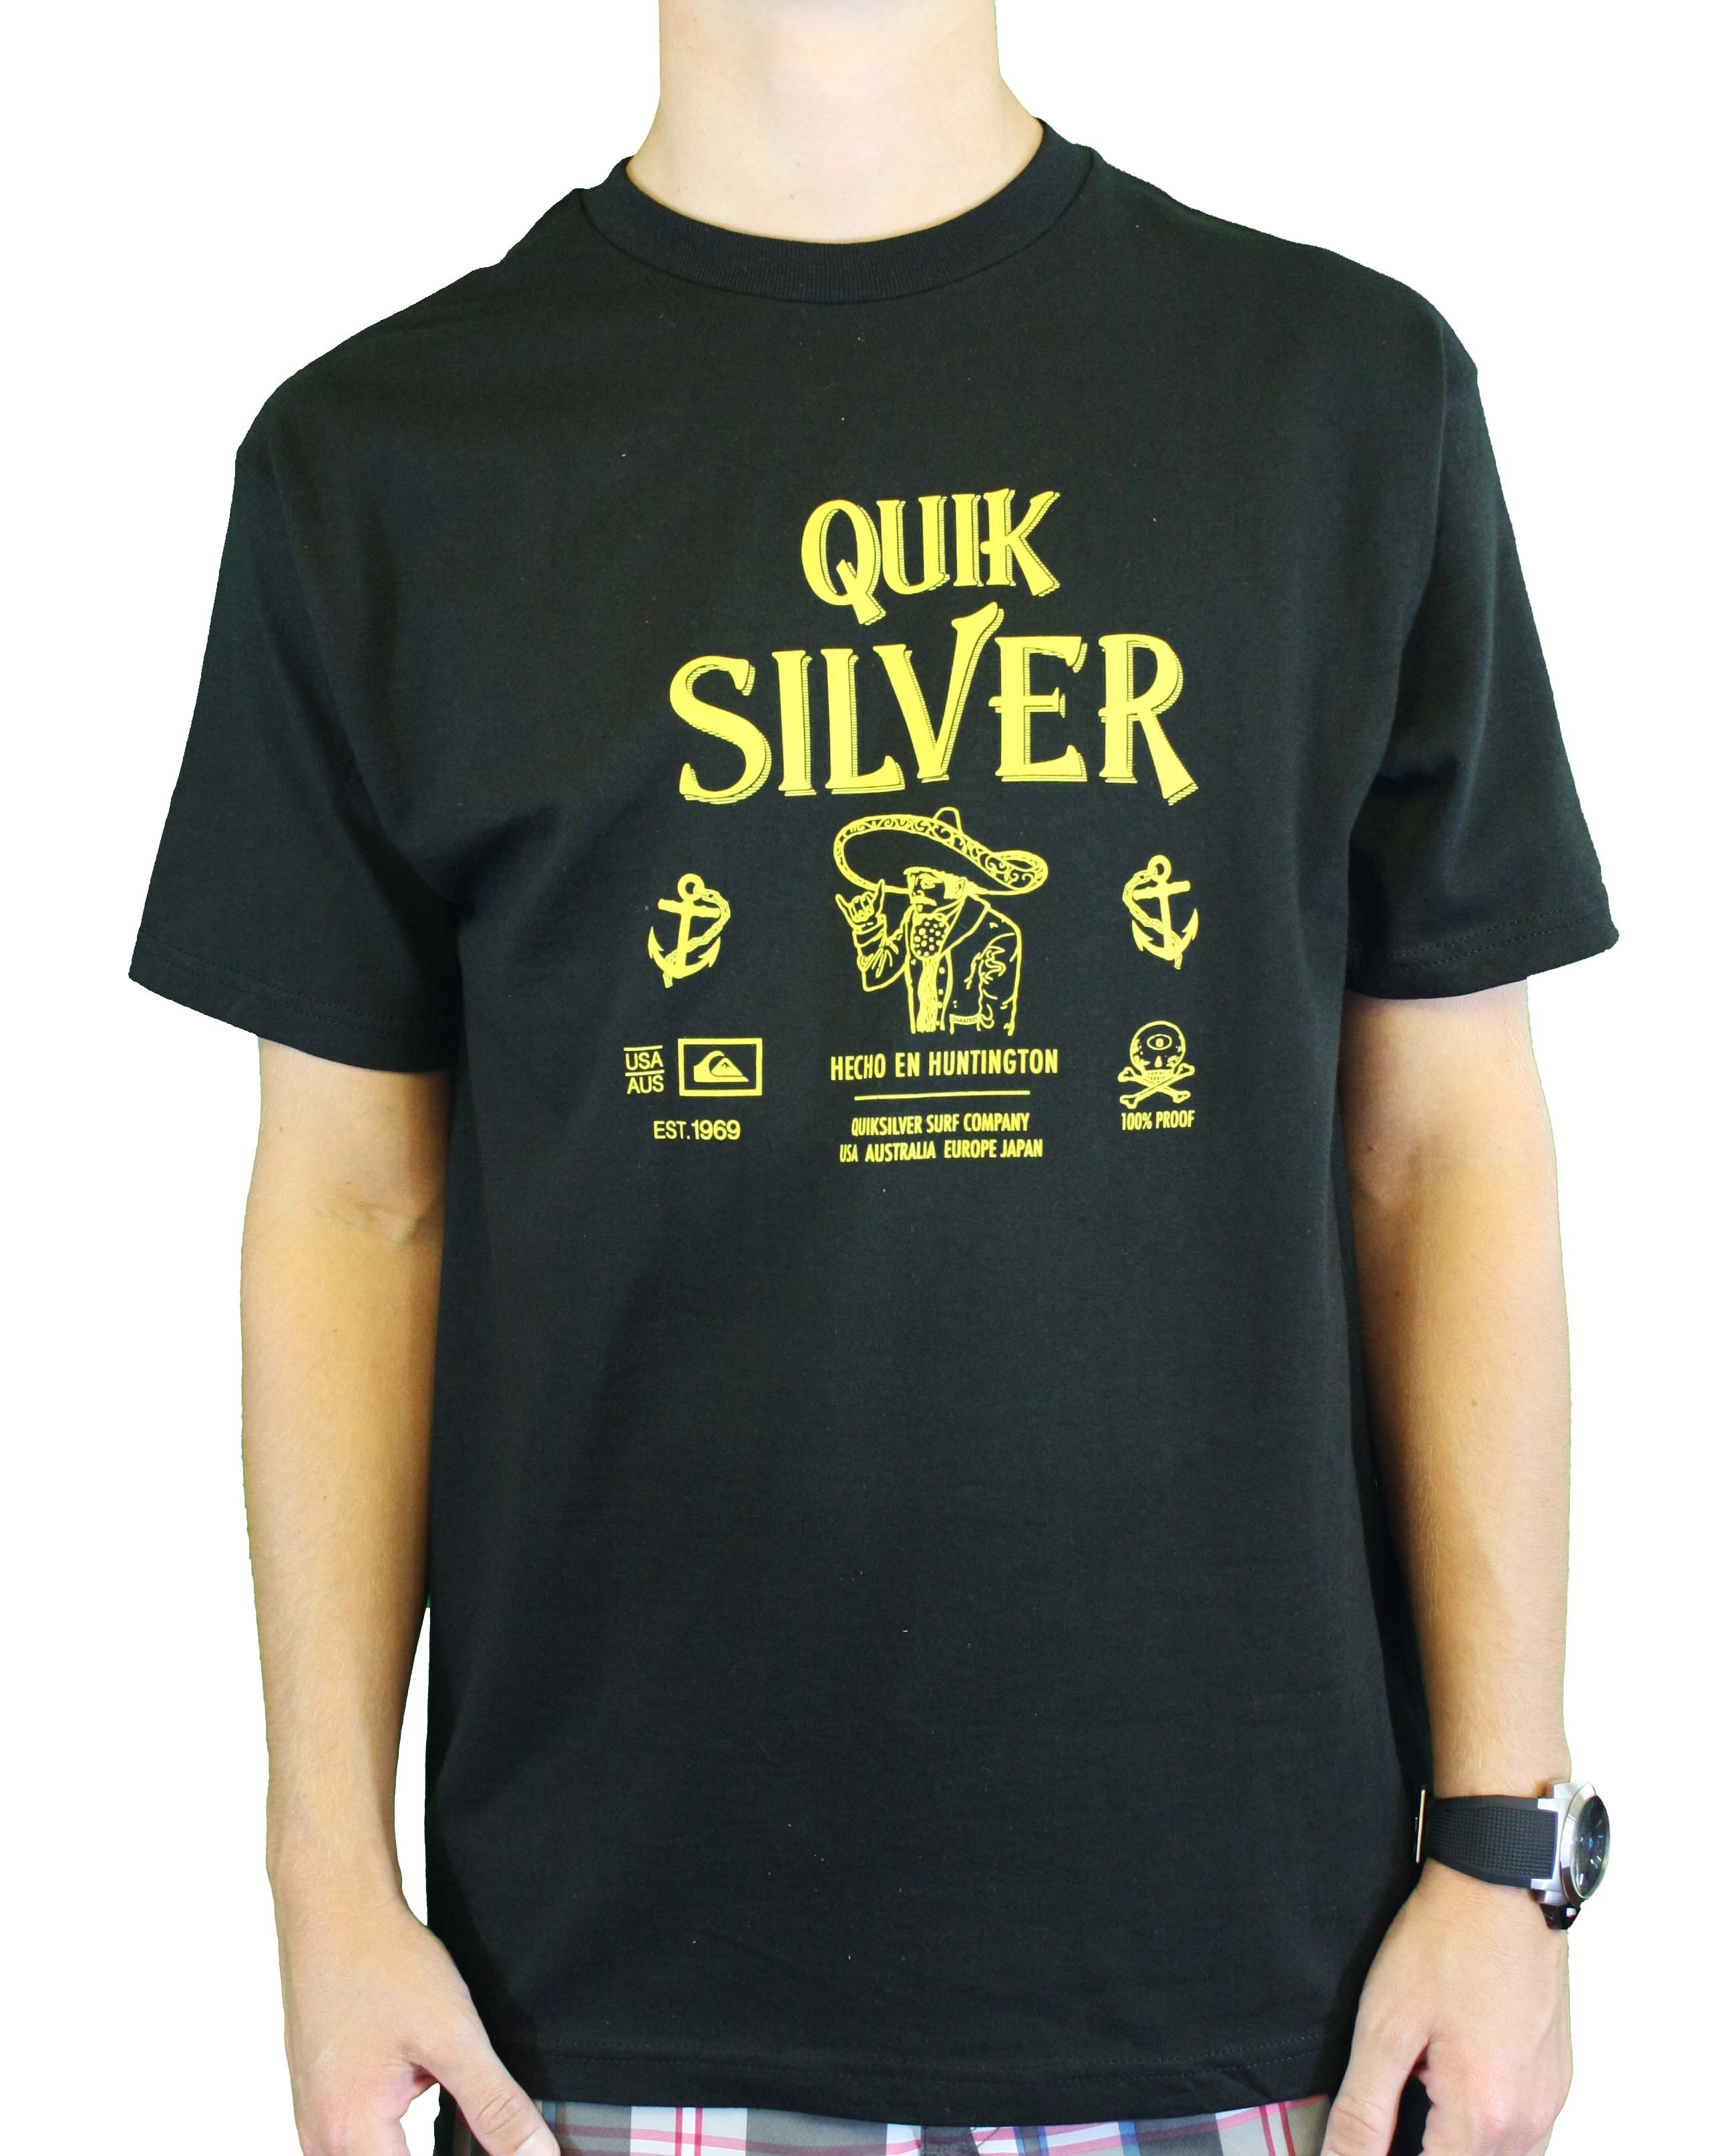 "Quiksilver Men's ""El Hefe-MT4"" Black T-Shirt QSYT4HD5-BLK at Sears.com"